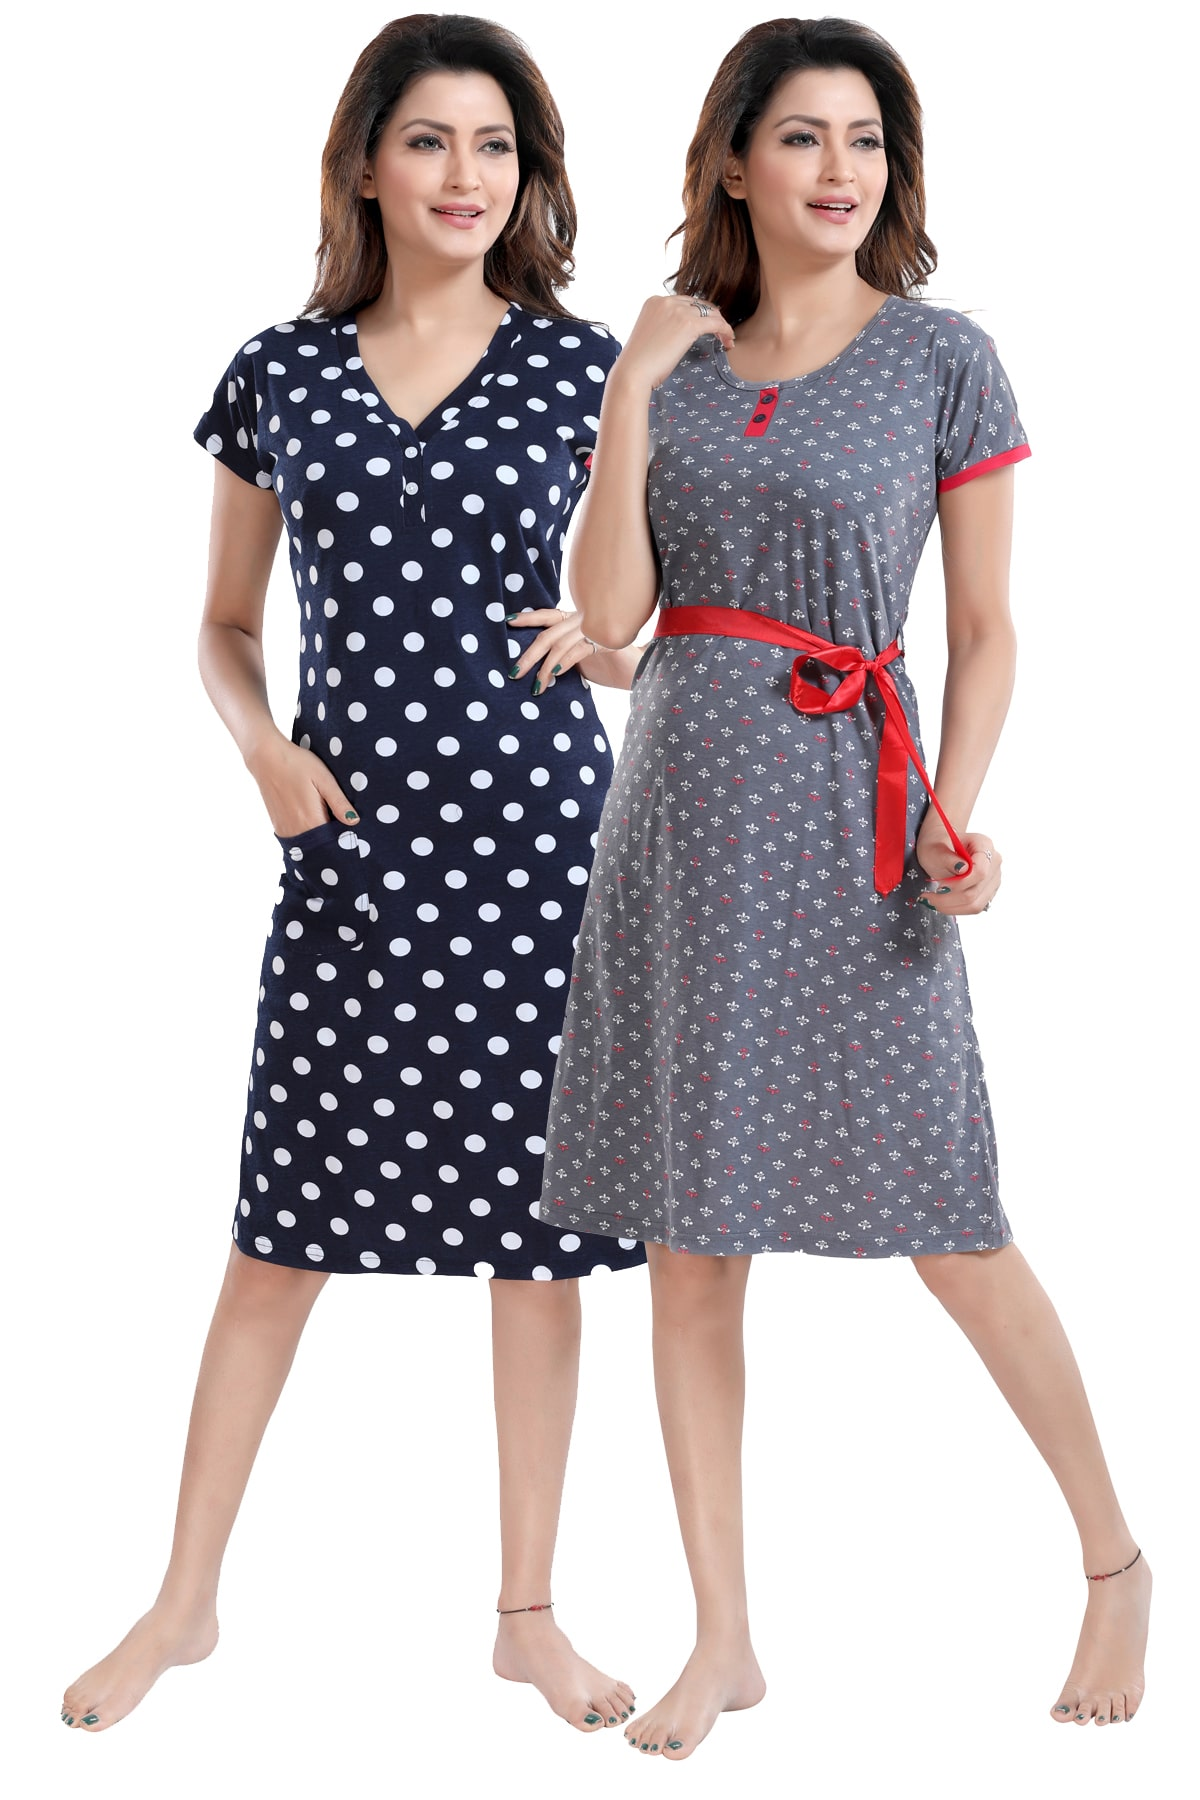 https://assetscdn1.paytm.com/images/catalog/product/A/AP/APPBE-YOU-WOMENBE-Y231313D1FA99C/0..jpg